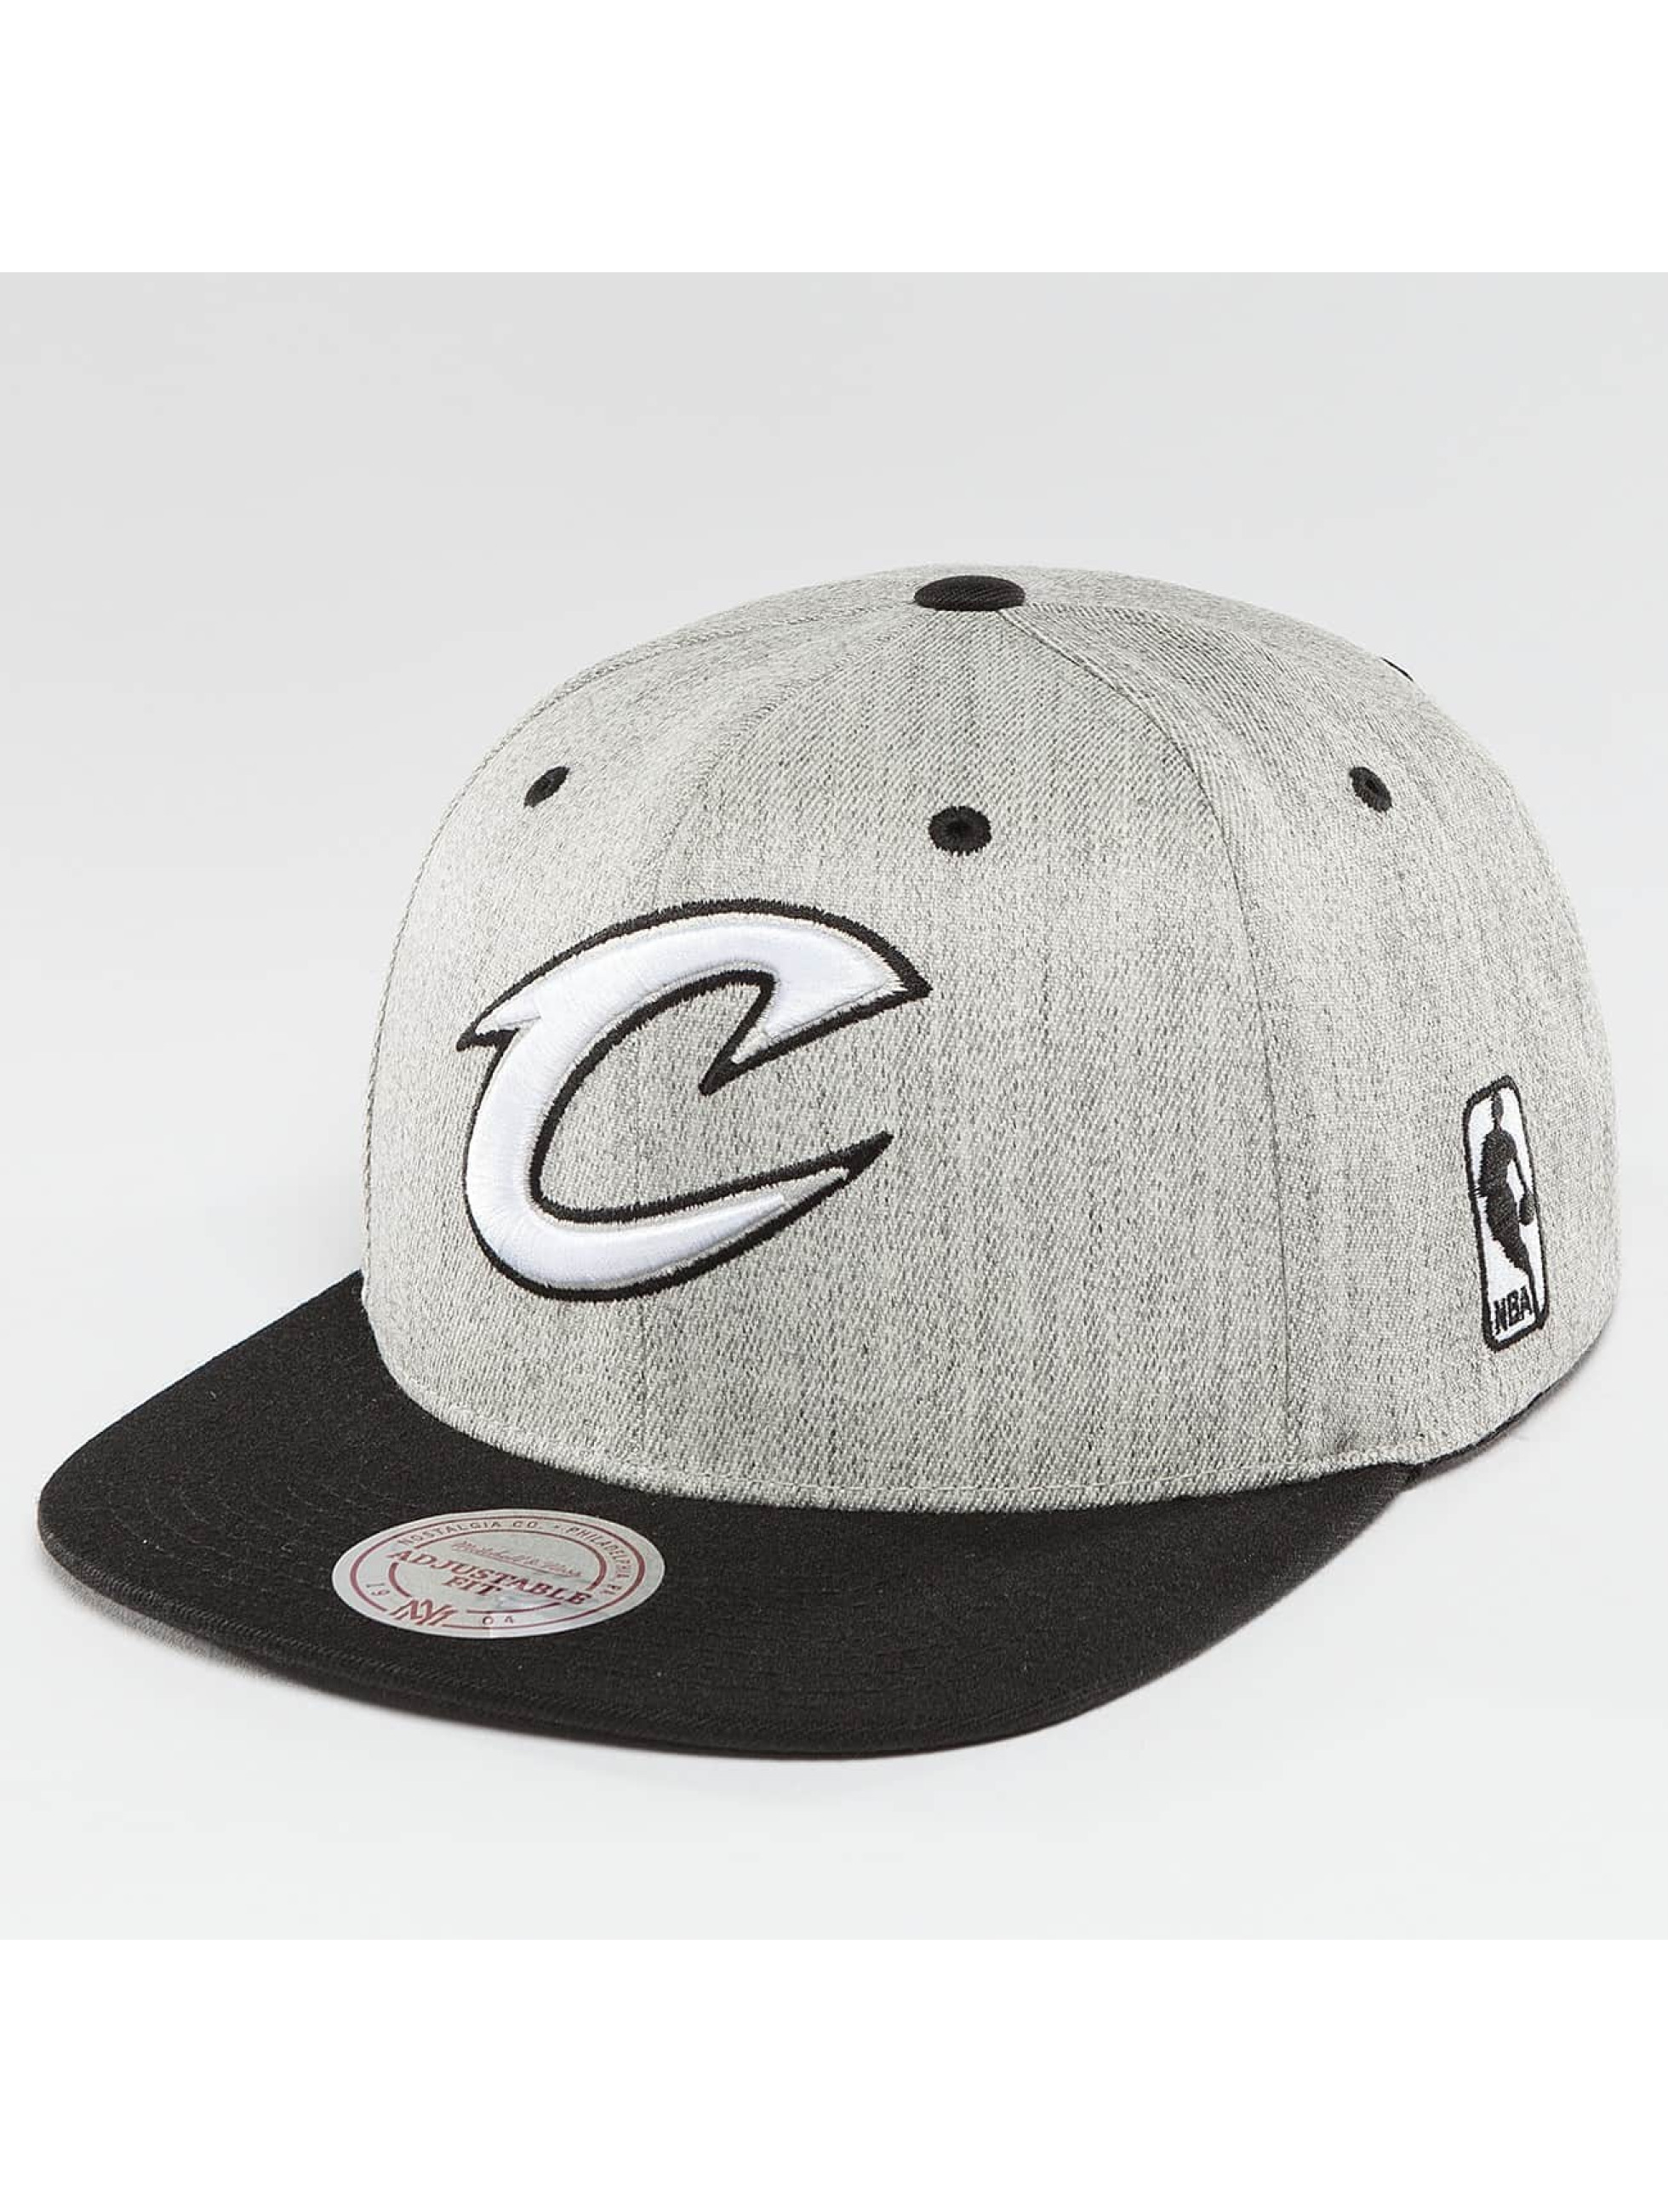 Mitchell & Ness Casquette Snapback & Strapback NBA 3-Tone Logo Cleveland Cavaliers gris